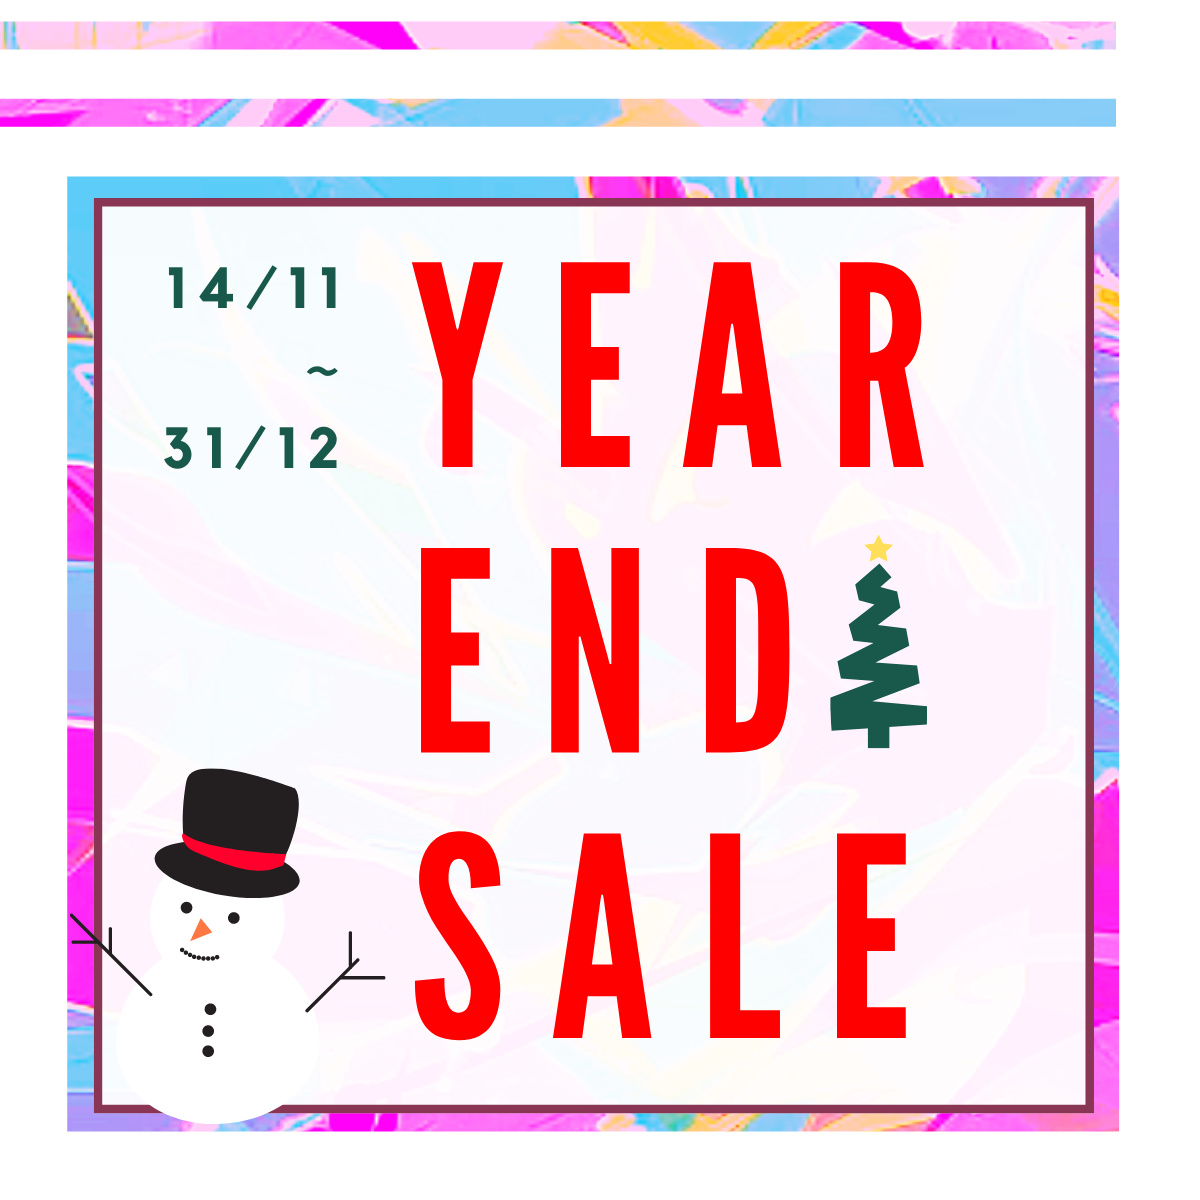 Annual Year End Sale Details